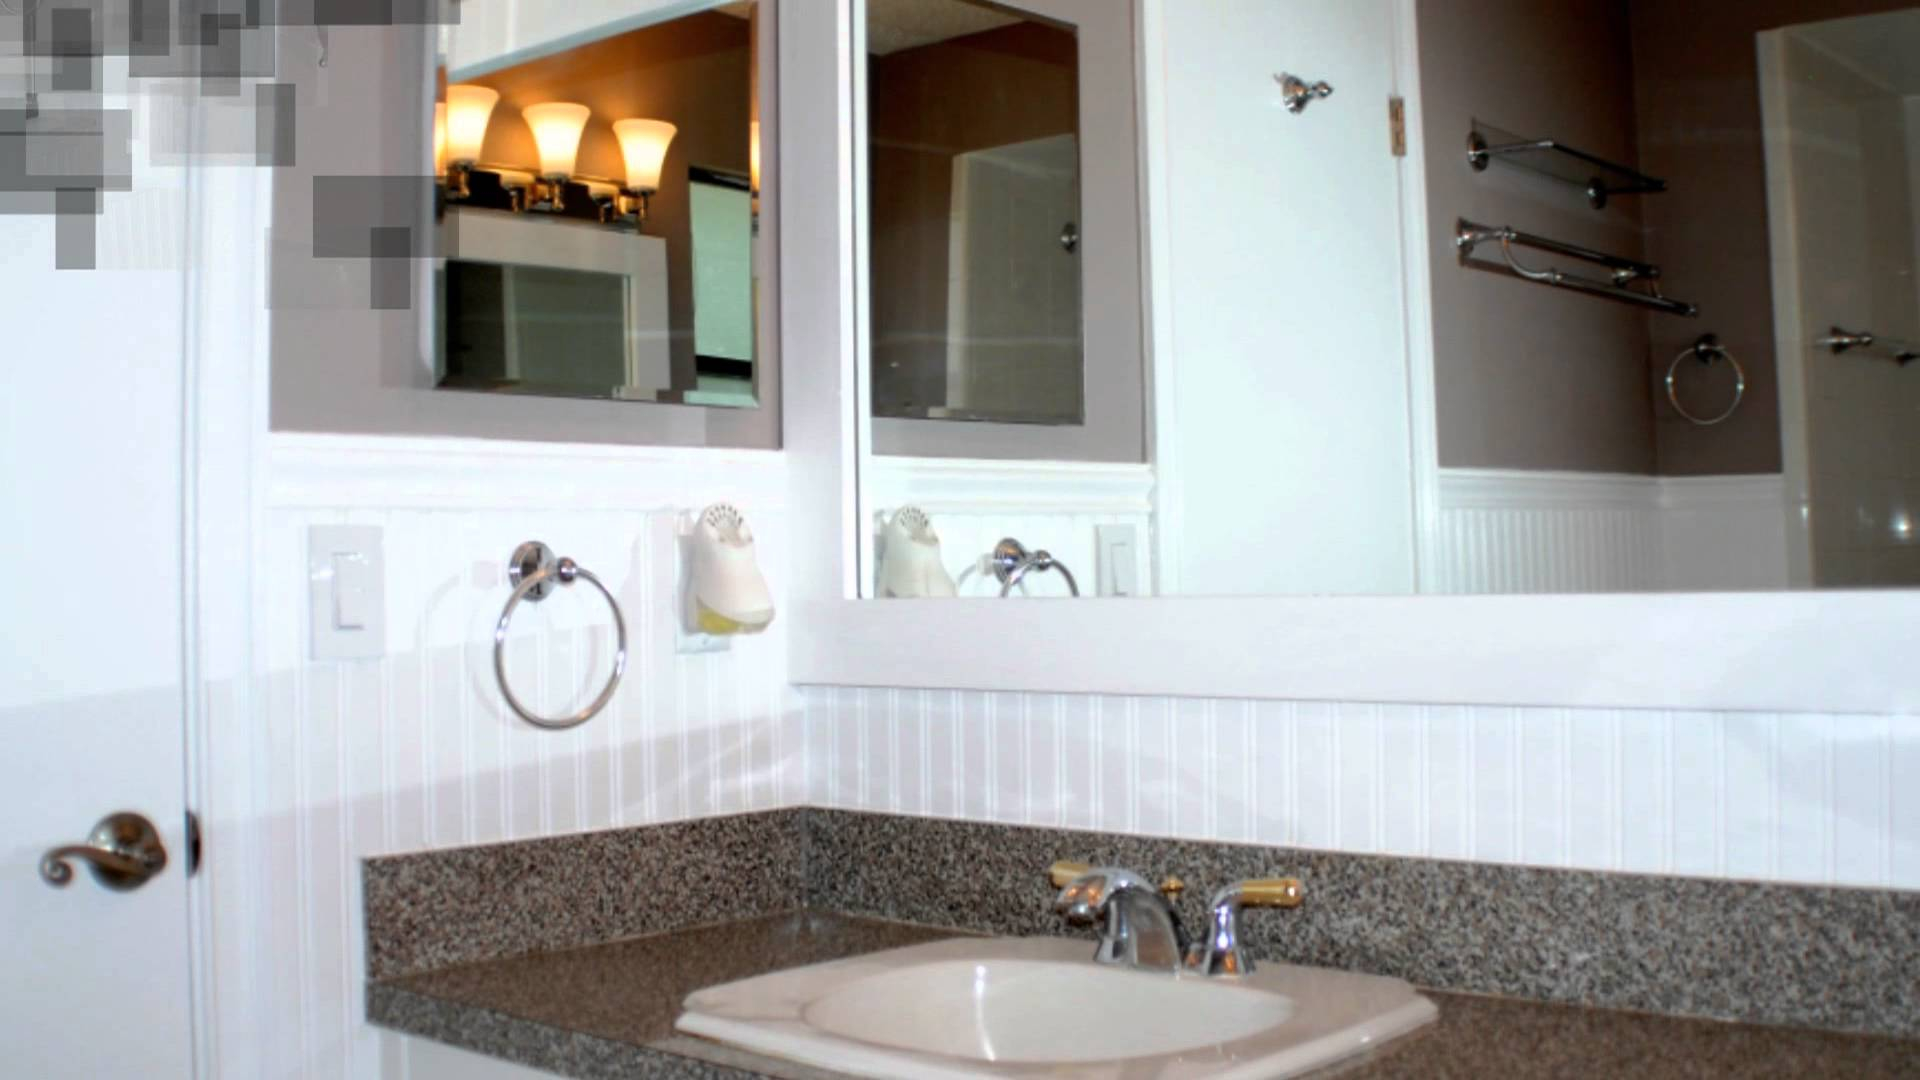 Modern How To Install Beadboard In A Bathroom - Youtube with regard to Set Bathrooms With Beadboard